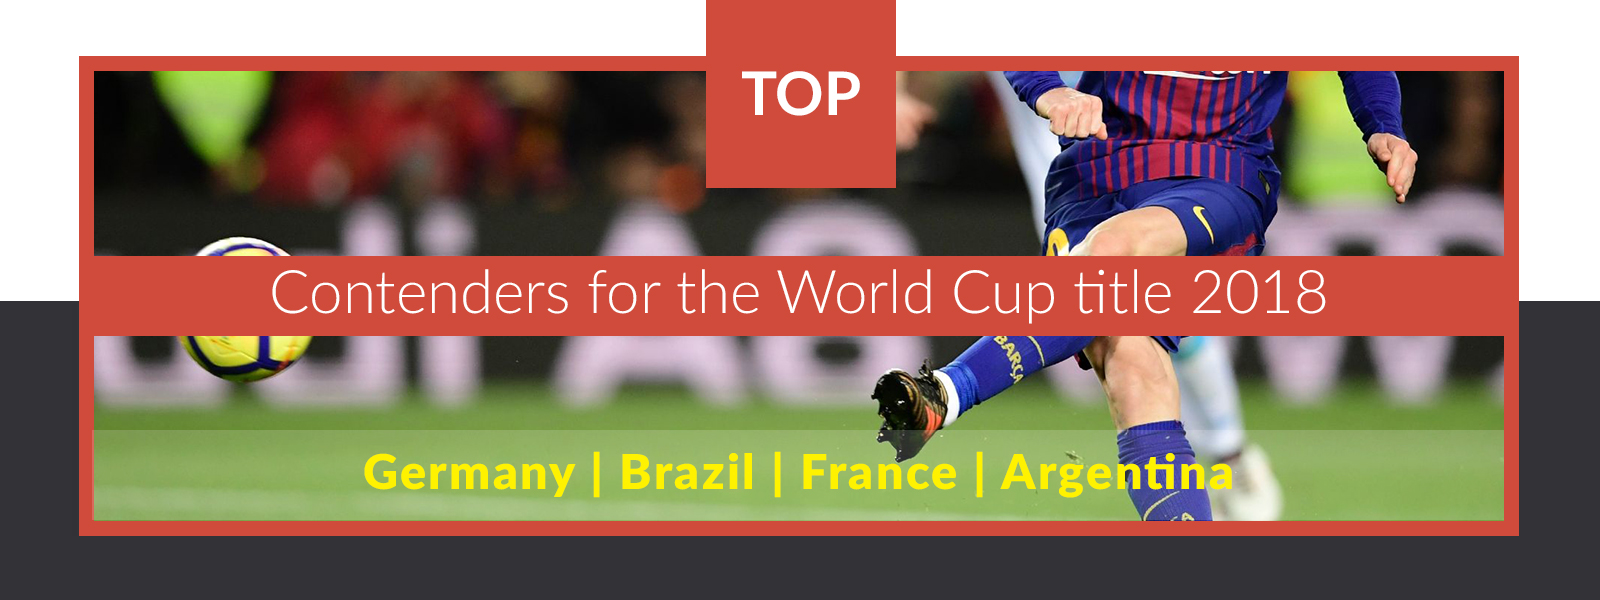 Top contenders for the World Cup title 2018